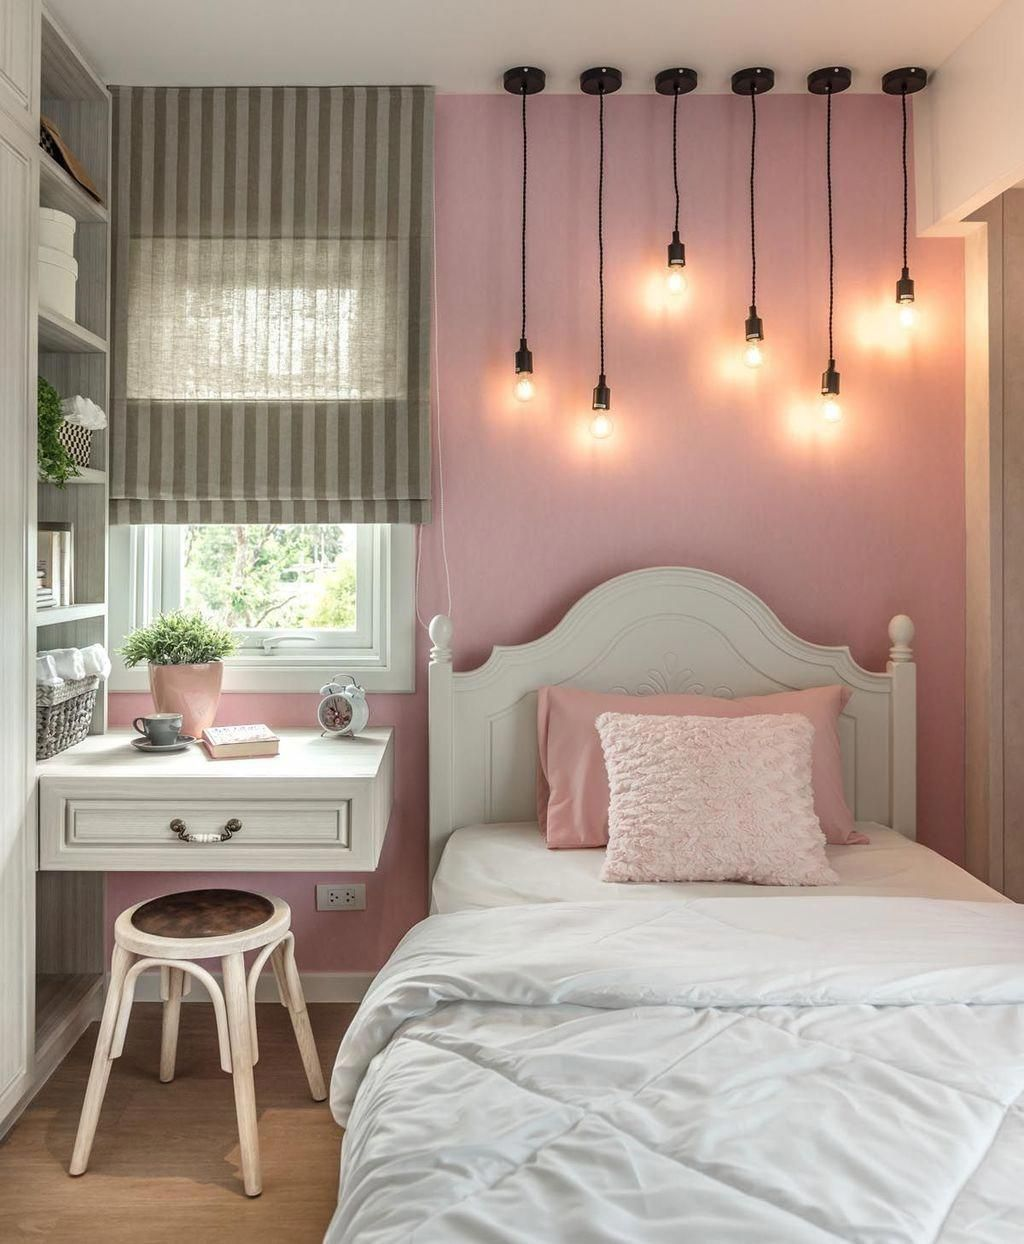 30 Elegant Decorating Ideas For Small Girl Bedrooms Tween ... on Classy Teenage Room Decor  id=13626